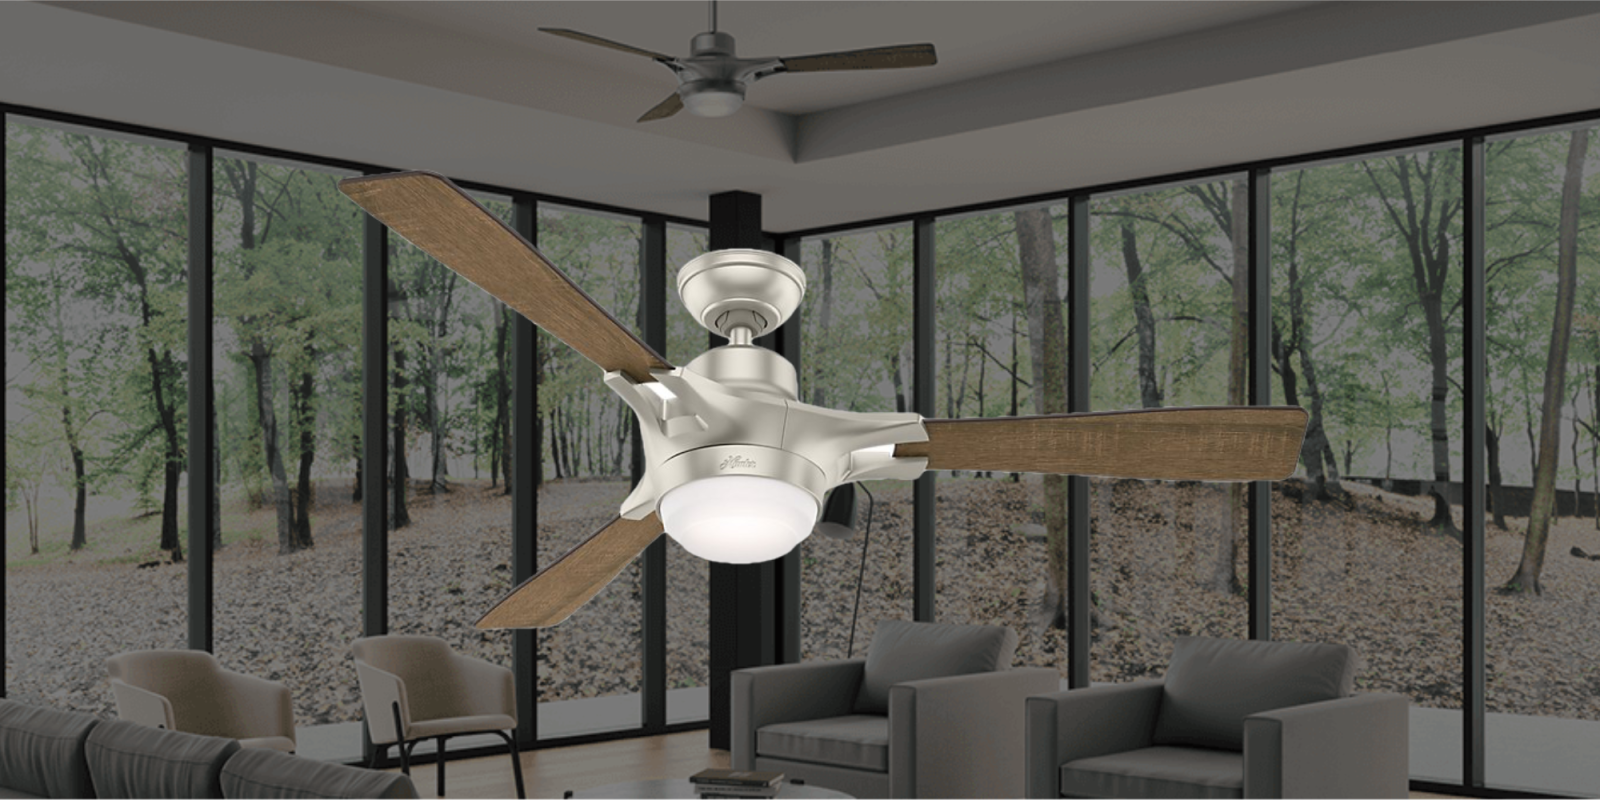 Hunter's SimpleConnect HomeKit-enabled Ceiling Fan drops to $289 shipped (Reg. $350)